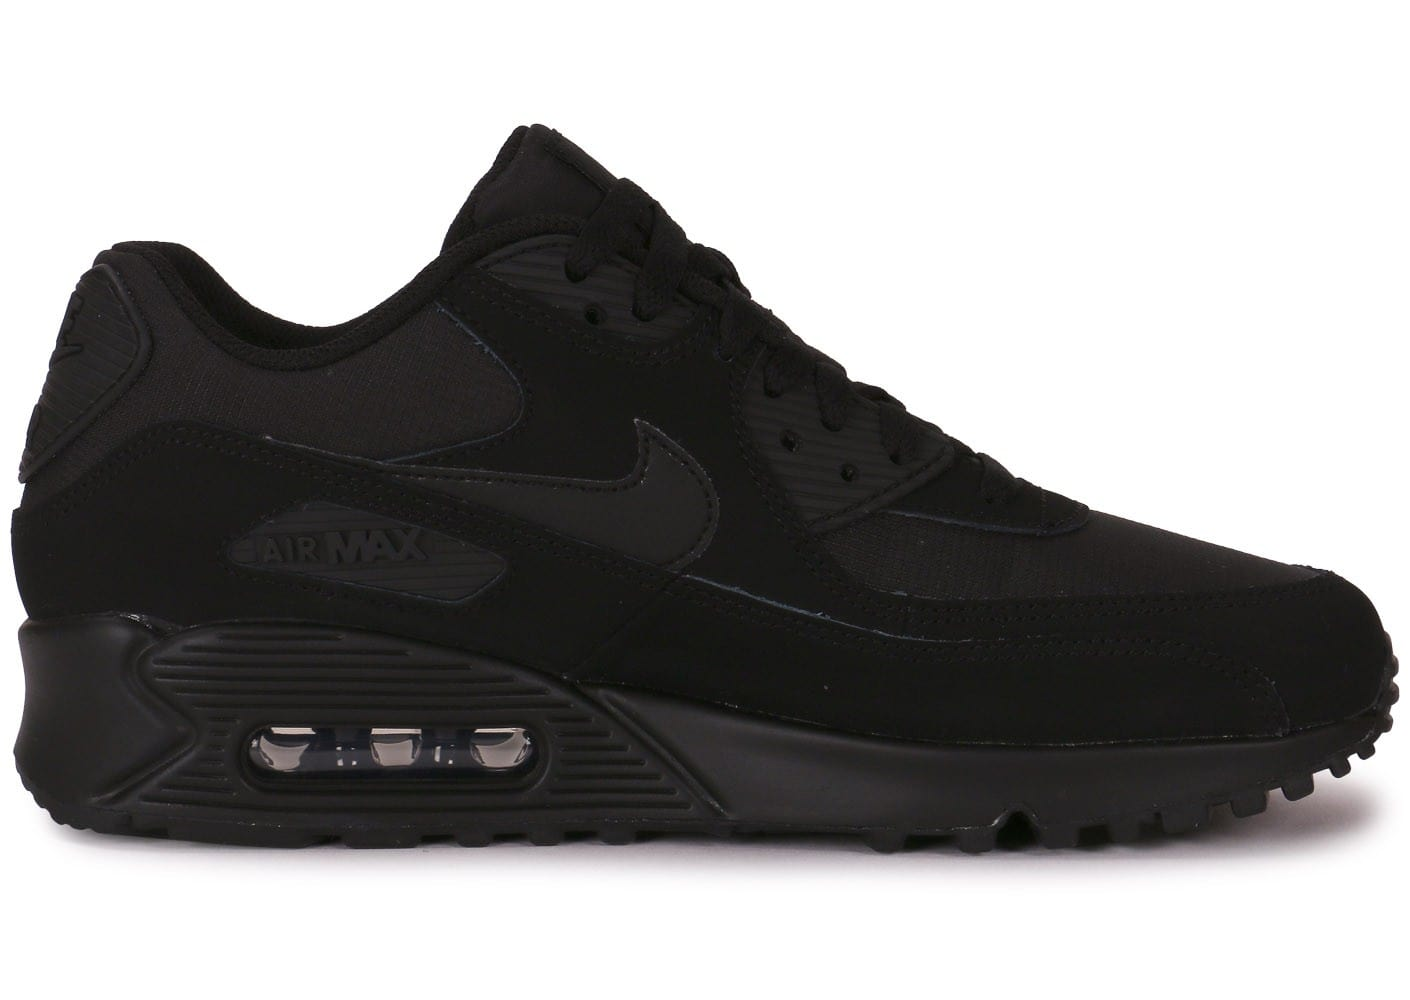 le dernier 5cca6 82438 Nike Air Max 90 Essential Triple Black - Chaussures Baskets ...